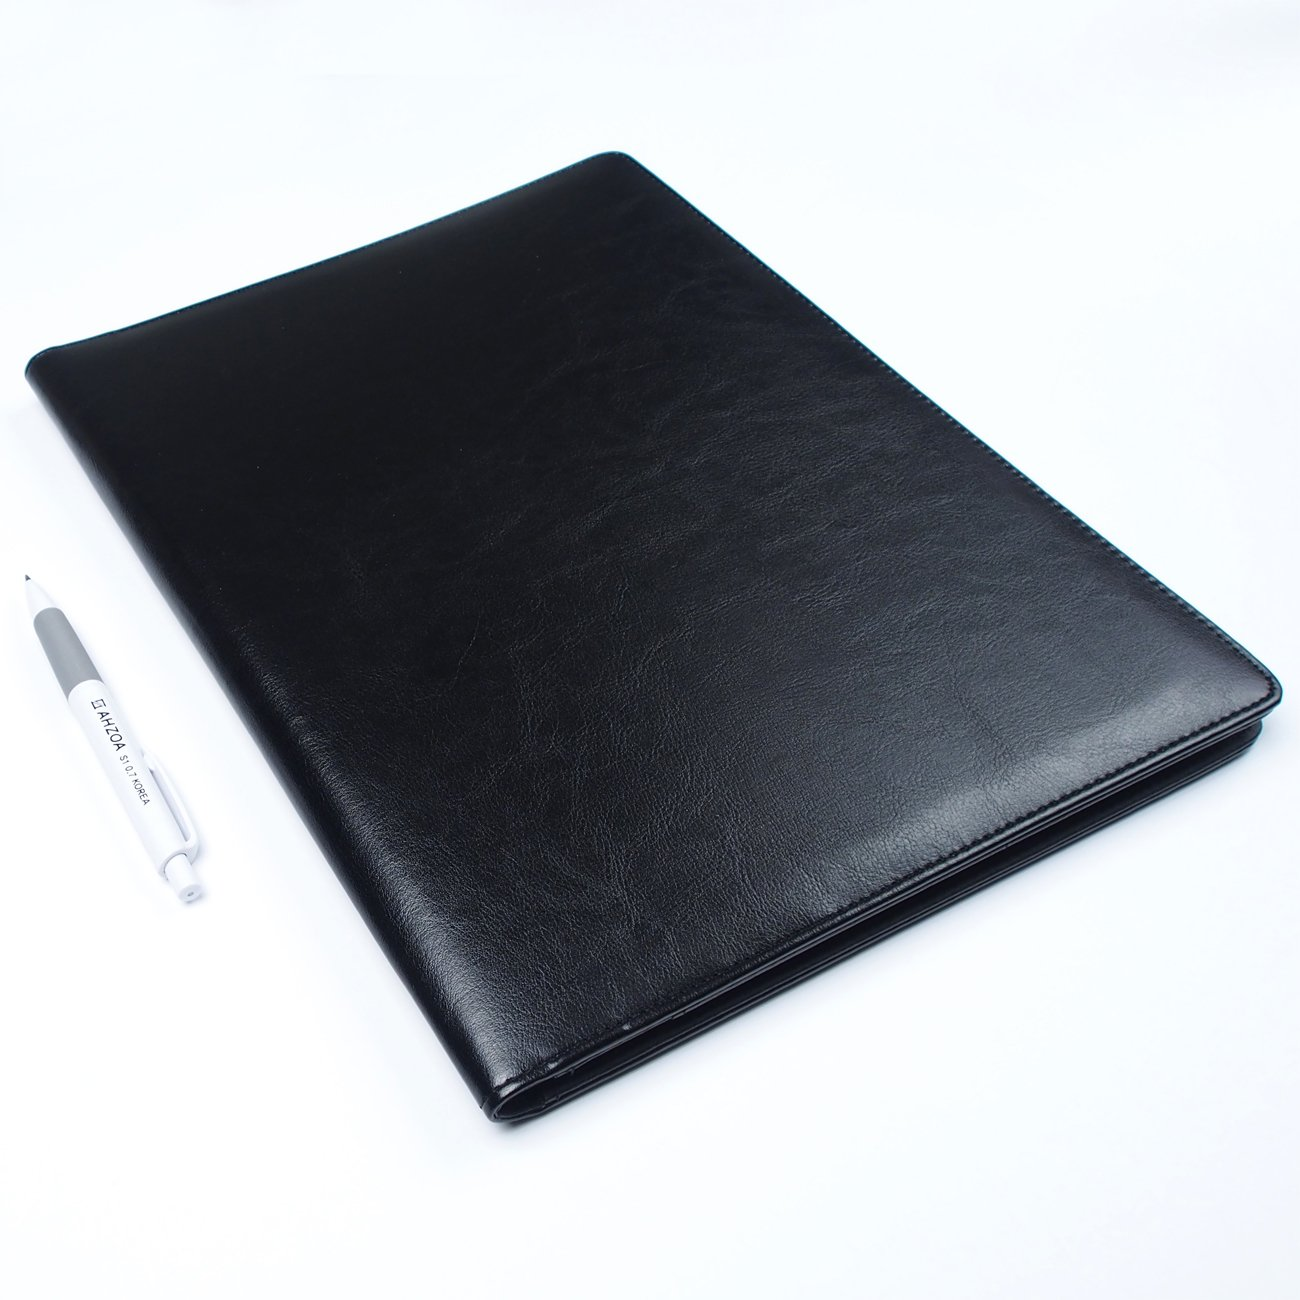 AHZOA 4 Pockets A4 Size Memo Padfolio S3 with Mechanical Pencil, Including 8.27 X 11.7 inch Legal Writing Pad, Synthetic Leather Handmade 9.84 X 12.99 inch Notepad Clipboard (Black) by AHZOA (Image #7)